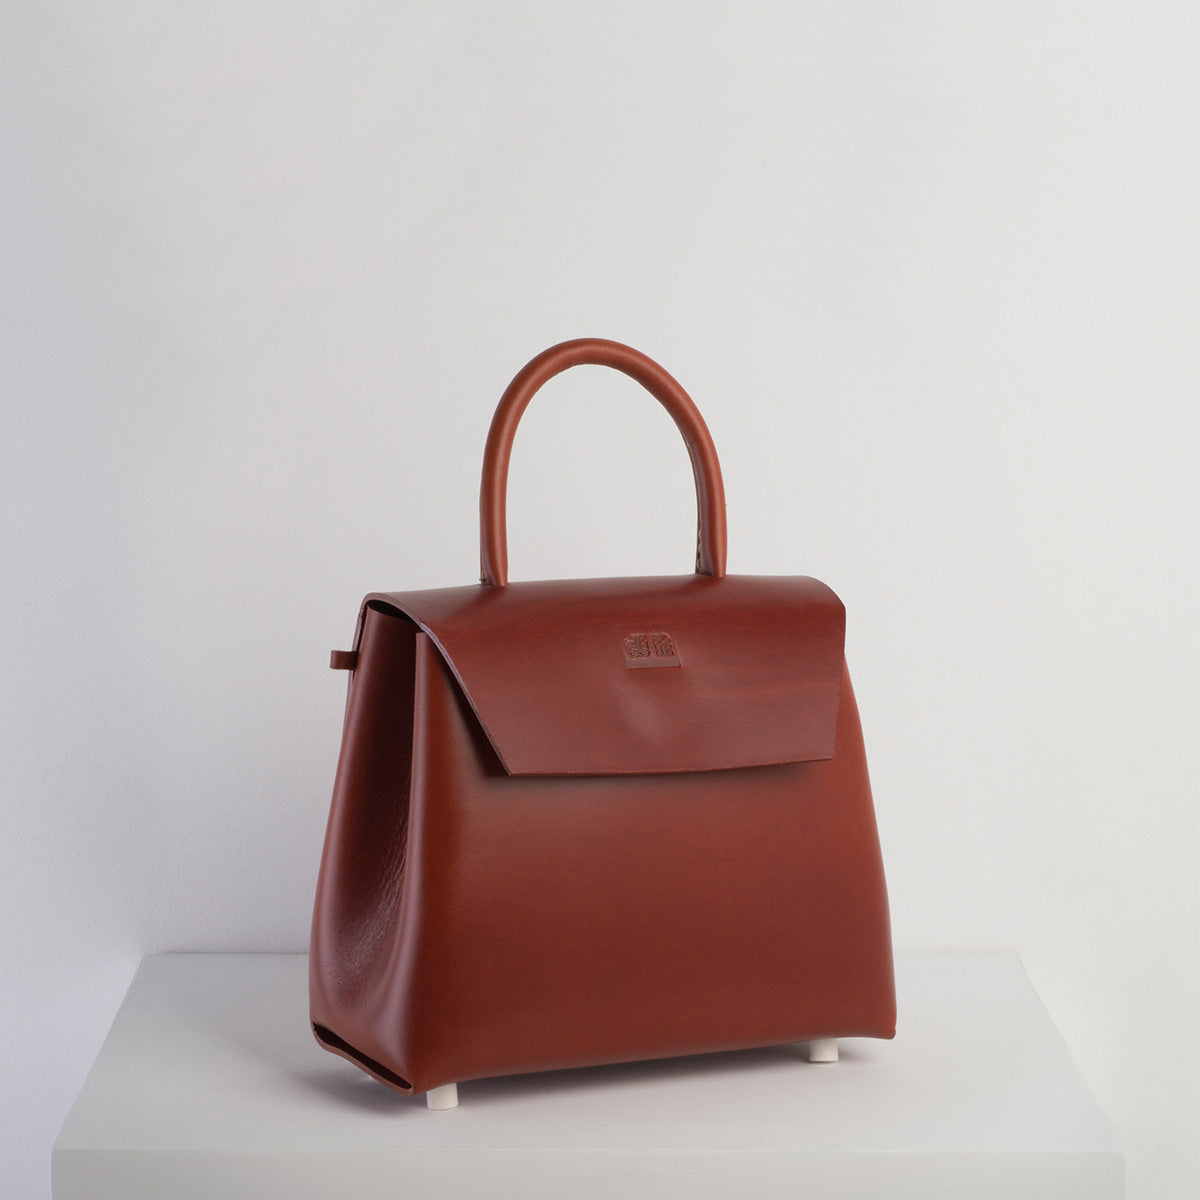 Maddi - Less Bore Luxury Handbags - Less Bore - Luxury Handbags | Spanish Brand  | Luxury | Responsible Sourced Handbag Brand - Less Bore - Spanish Handbag - Hand Stitched | Ecological Handbag Brand | Luxury Handbag - Less Bore - Maddi - Spanish Design | Concept Store | Cognac